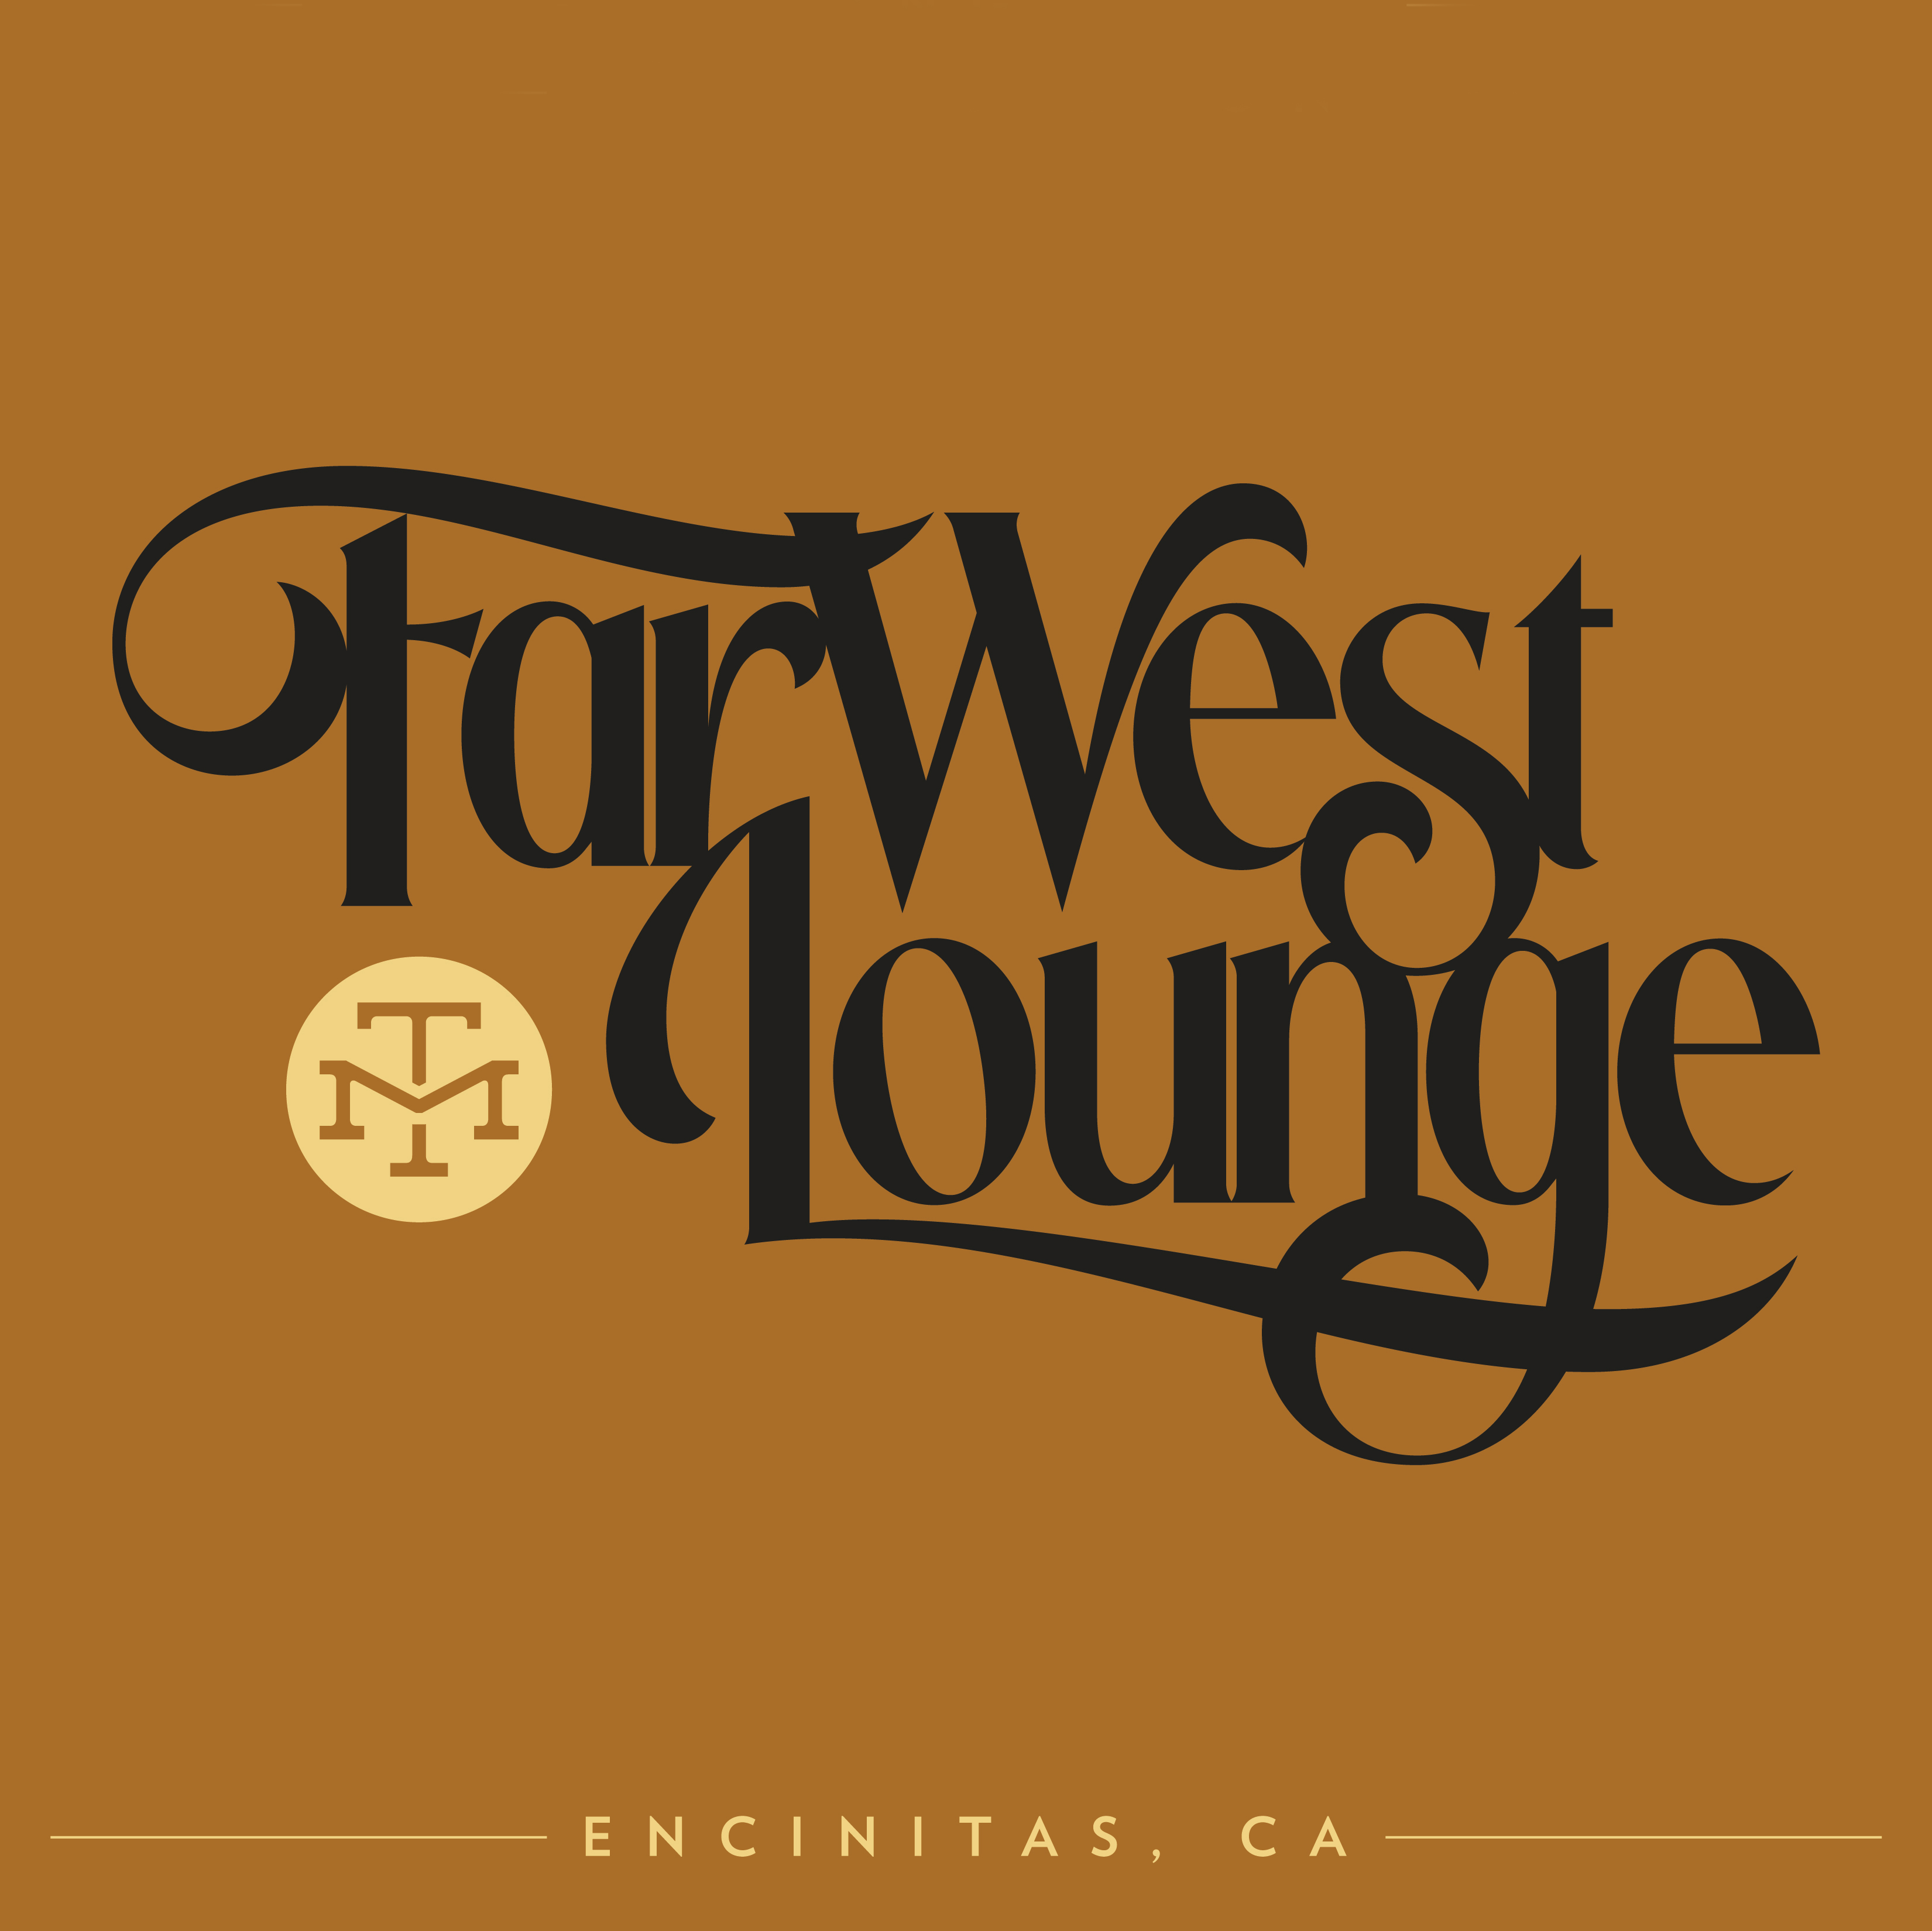 Far West Lounge Logo